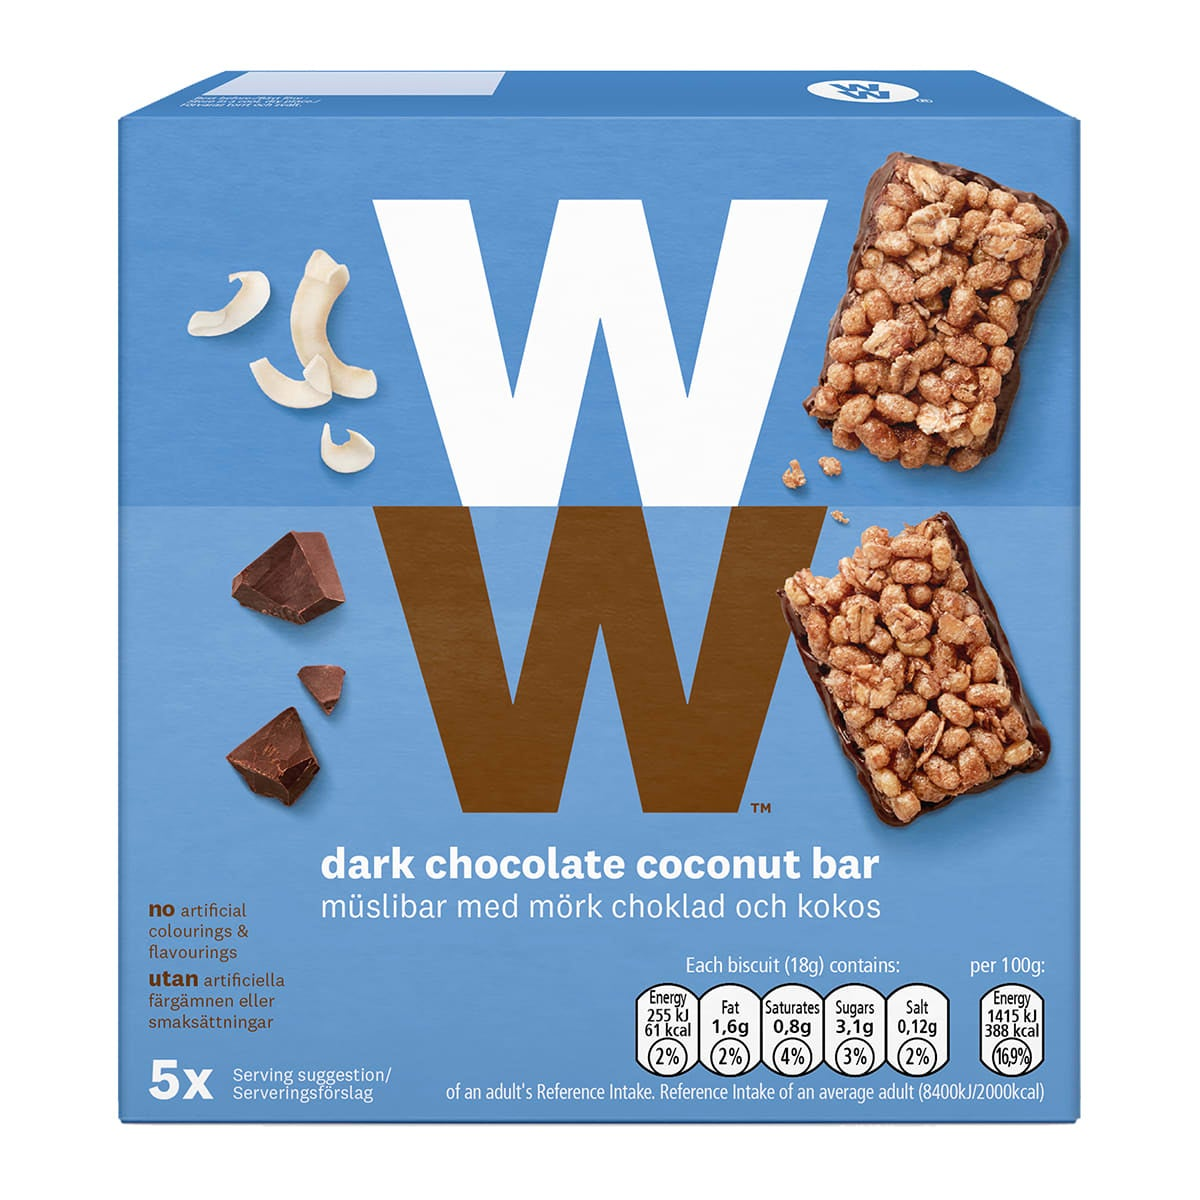 Box of 5, WW Dark Chocolate and Coconut Cereal Bars, dark chocolate flavoured coating and coconut flakes, 2 SmartPoints values, suitable for vegetarians